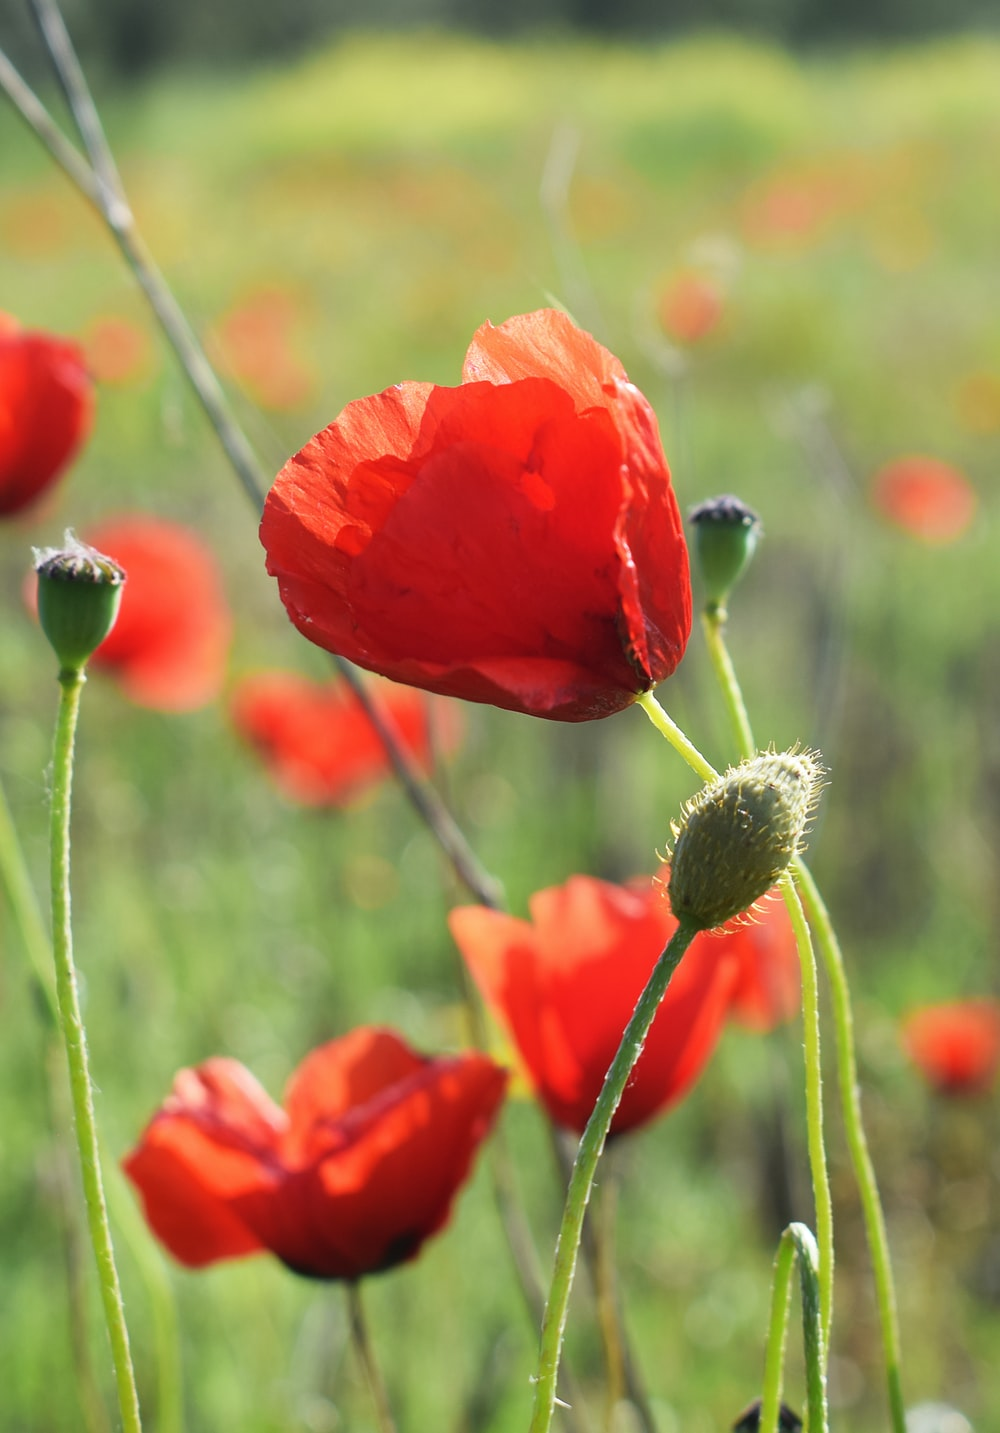 red poppy in bloom during daytime